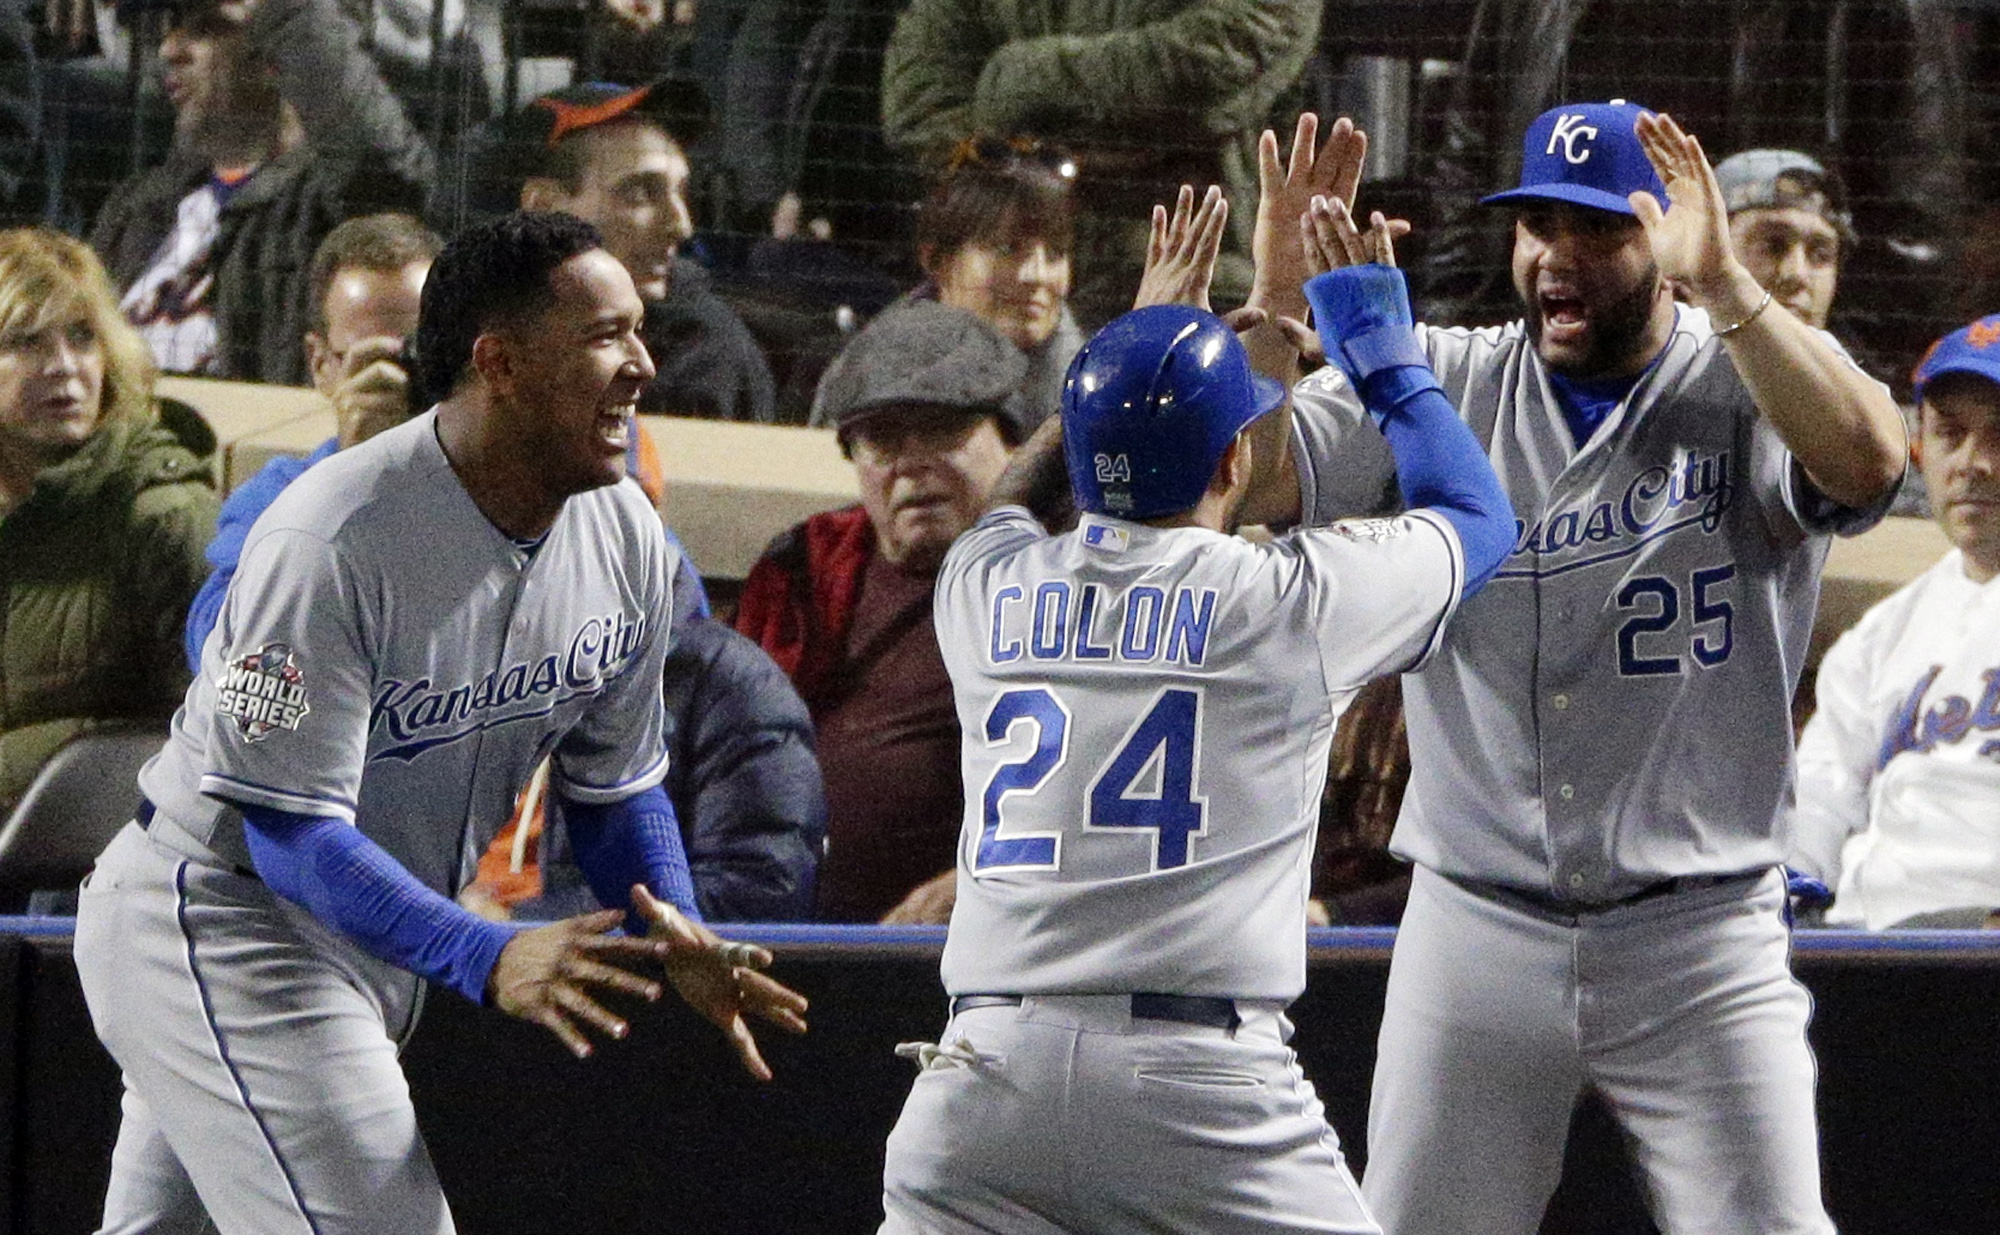 Kansas City Royals' Christian Colon celebrates after scoring against the New York Mets during the 12th inning of Game 5 of the Major League Baseball World Series Monday, Nov. 2, 2015, in New York. (AP Photo/Charlie Riedel)